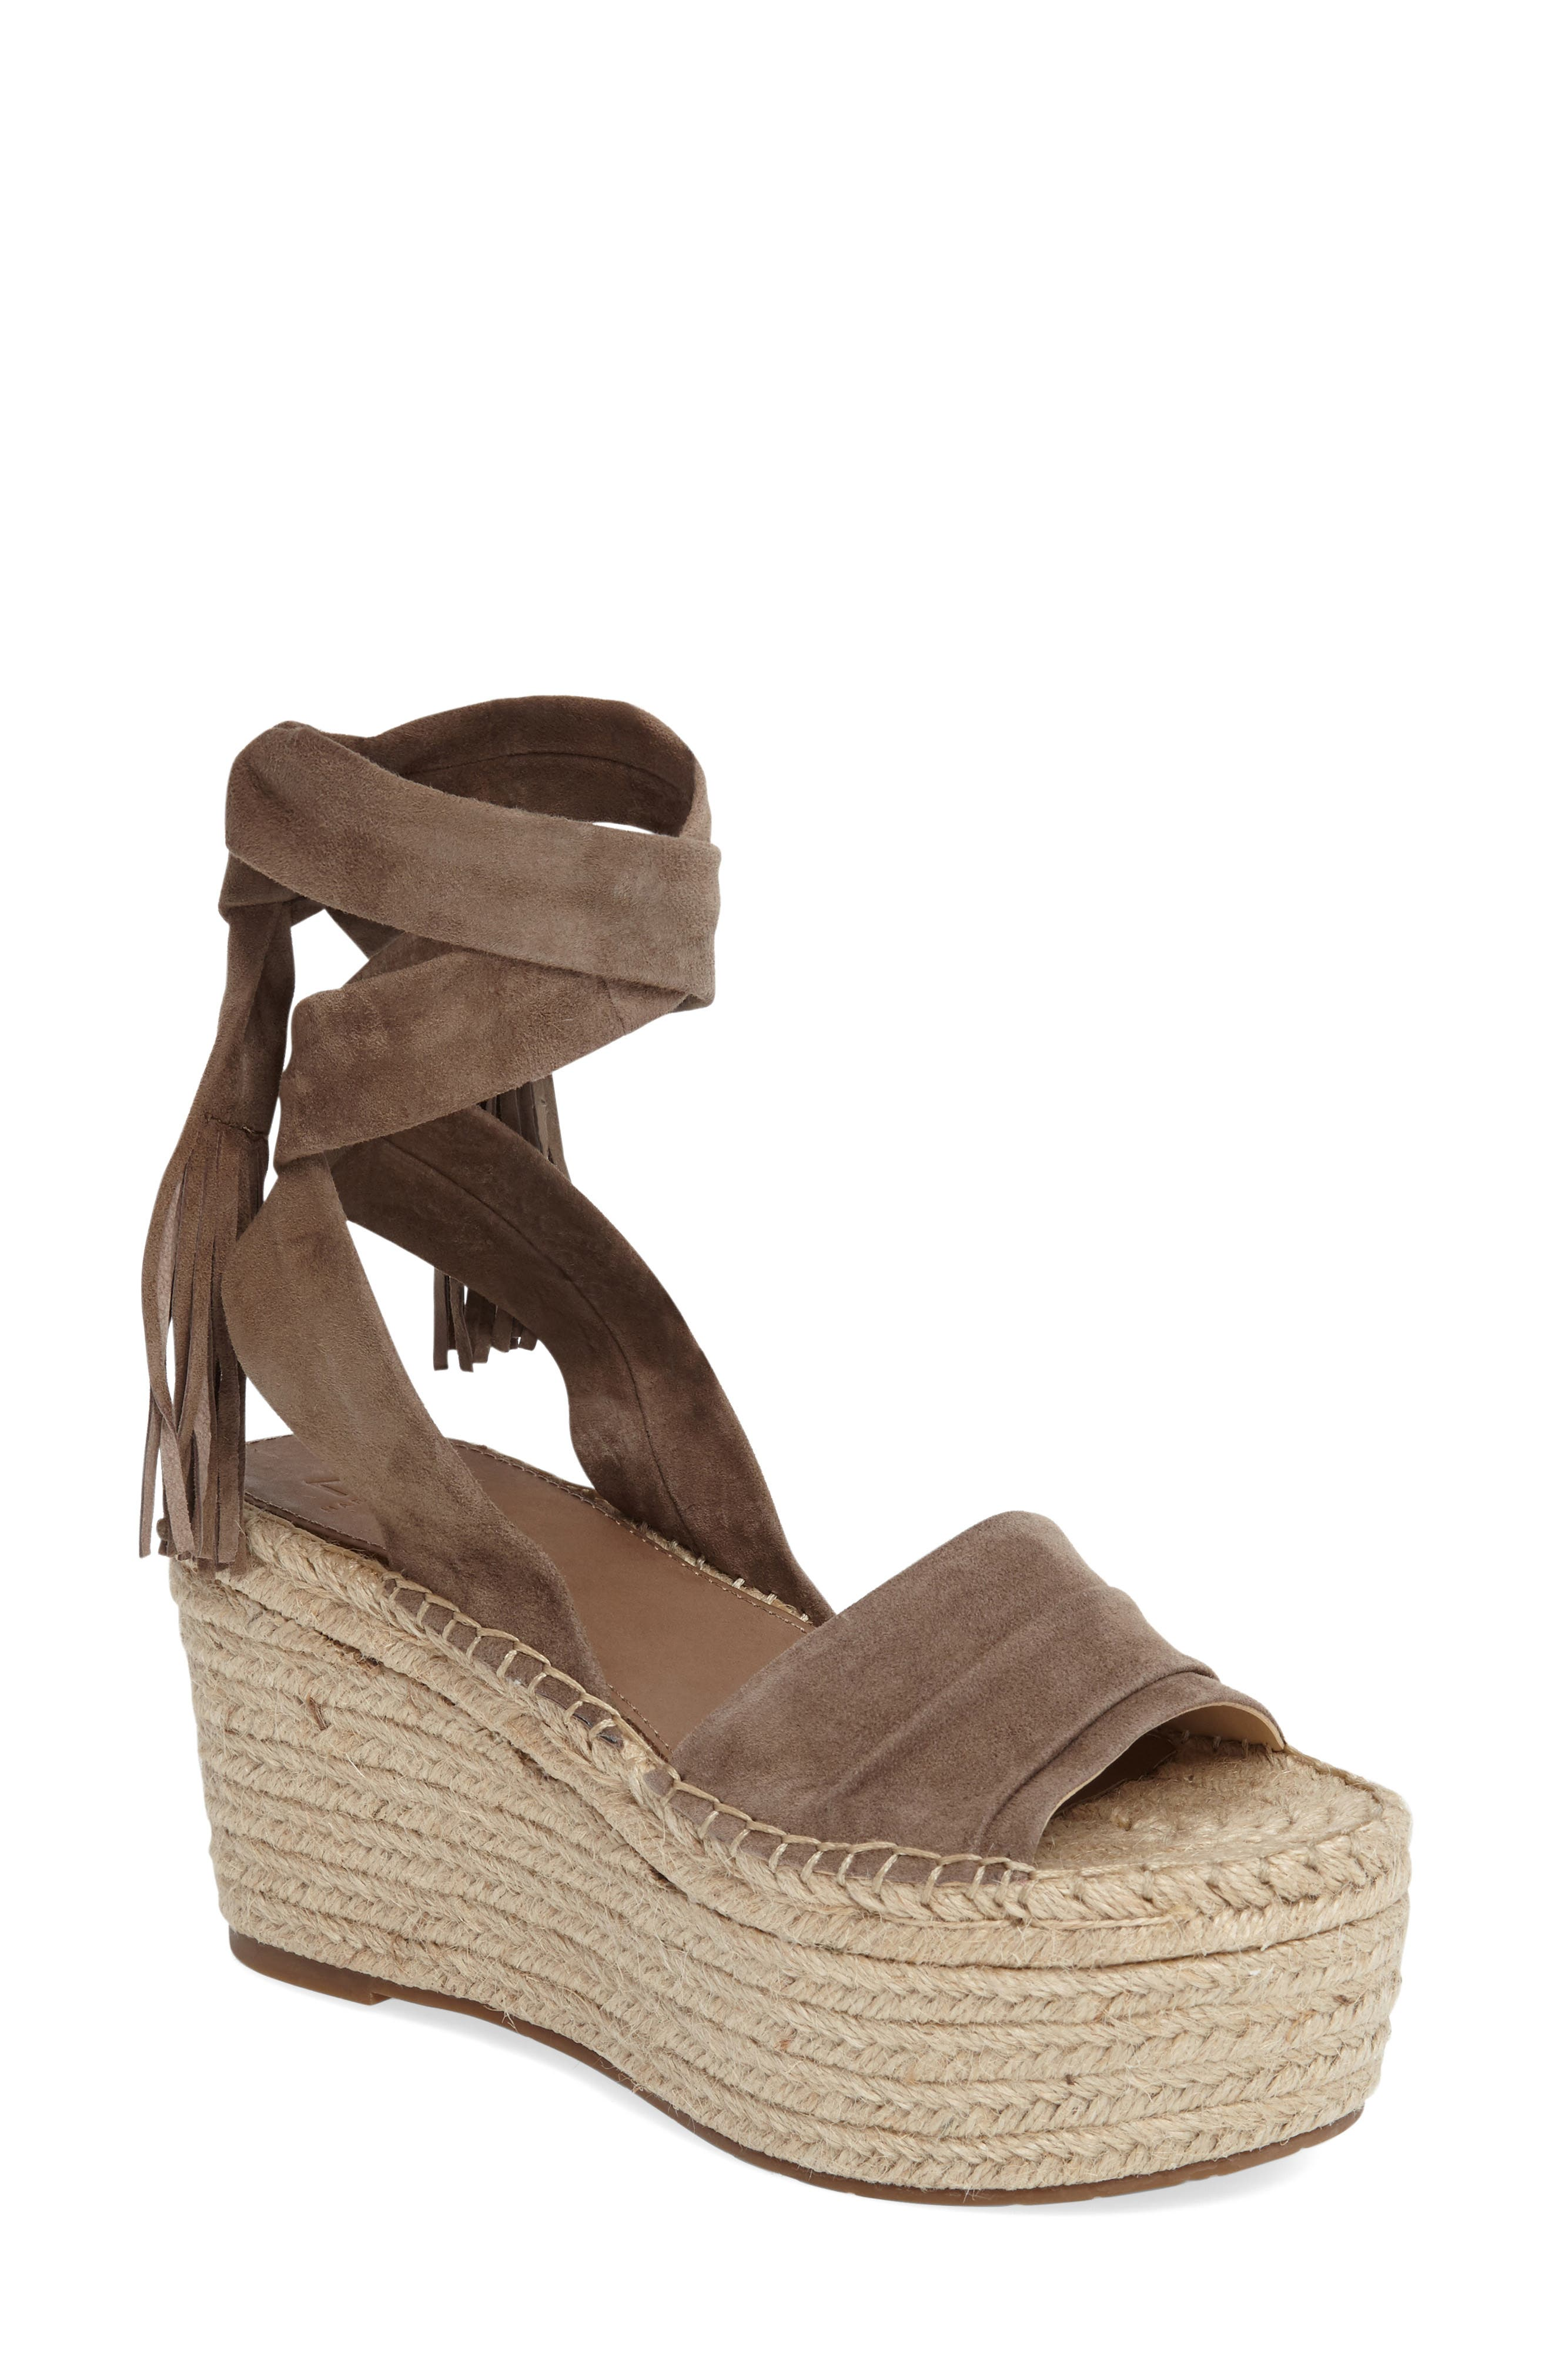 Alternate Image 1 Selected - Marc Fischer LTD Rabecca Lace-Up Platform Wedge (Women)